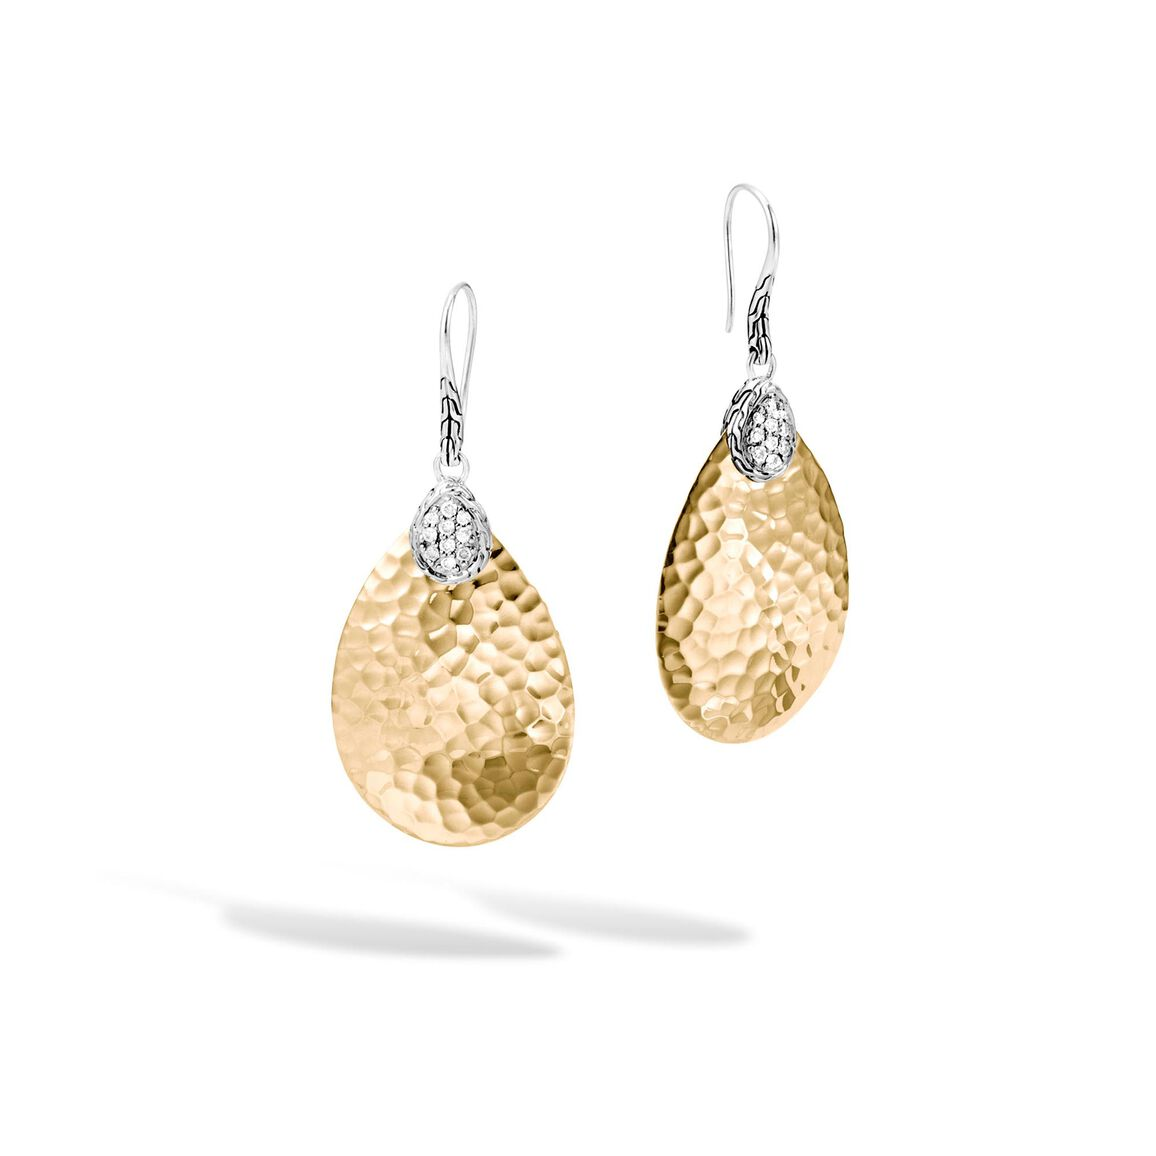 Classic Chain SM Drop Earring, Silver, Hammered 18K, Diamond